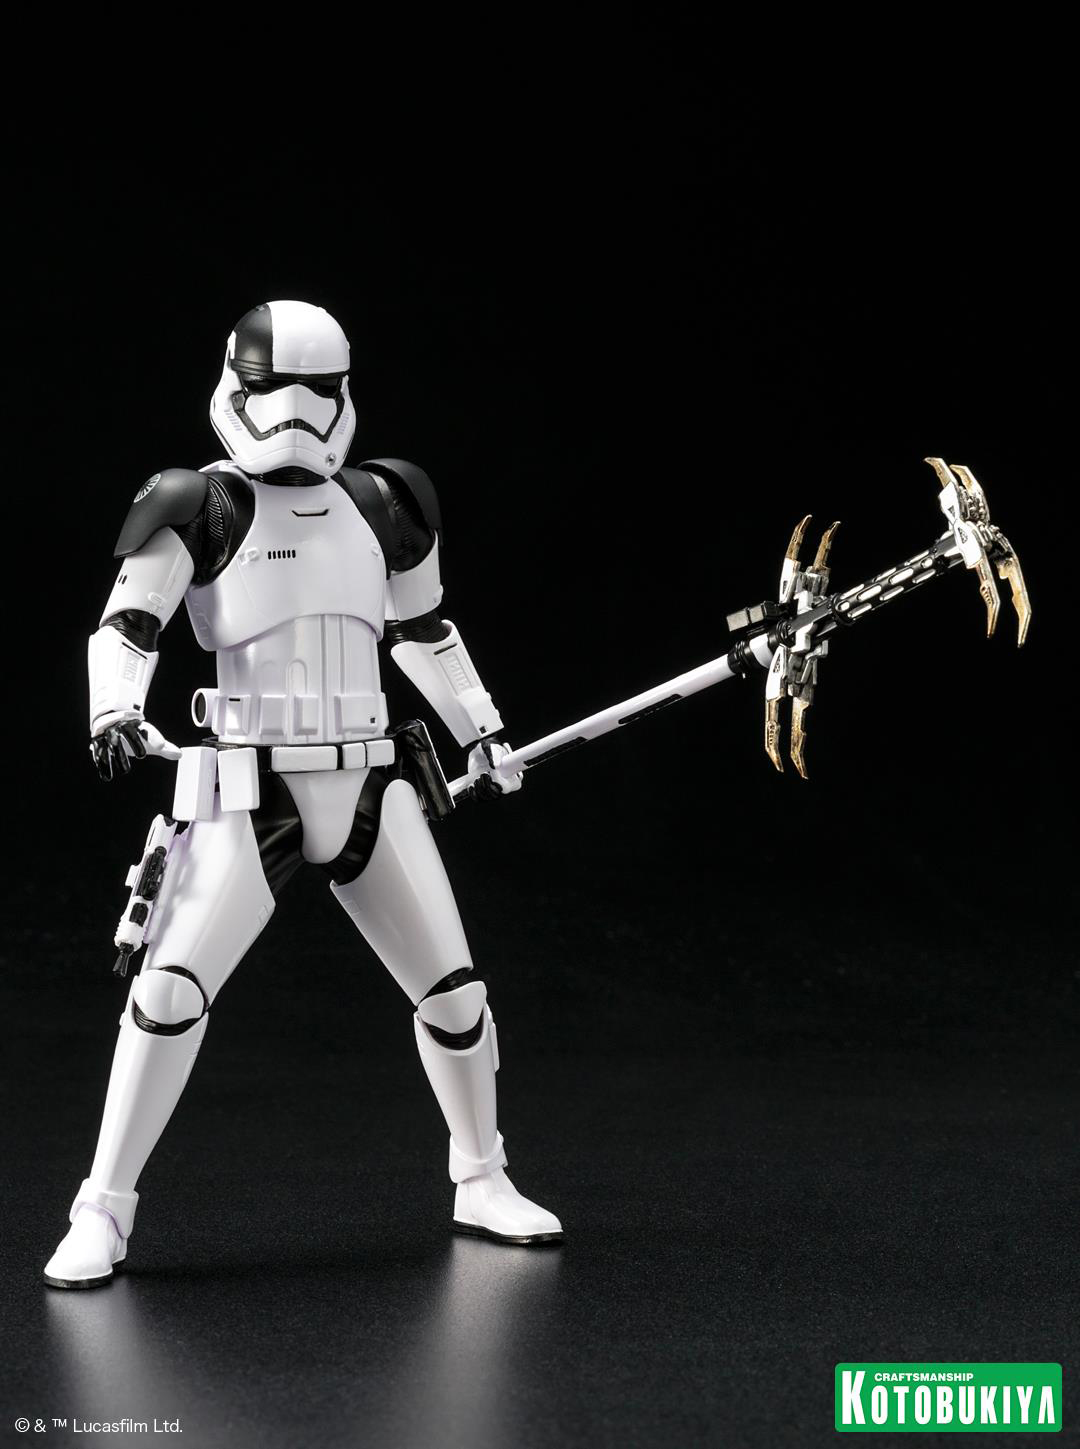 star-wars-the-last-jedi-kotobukiya-artfx-stormtrooper-executioner-statue